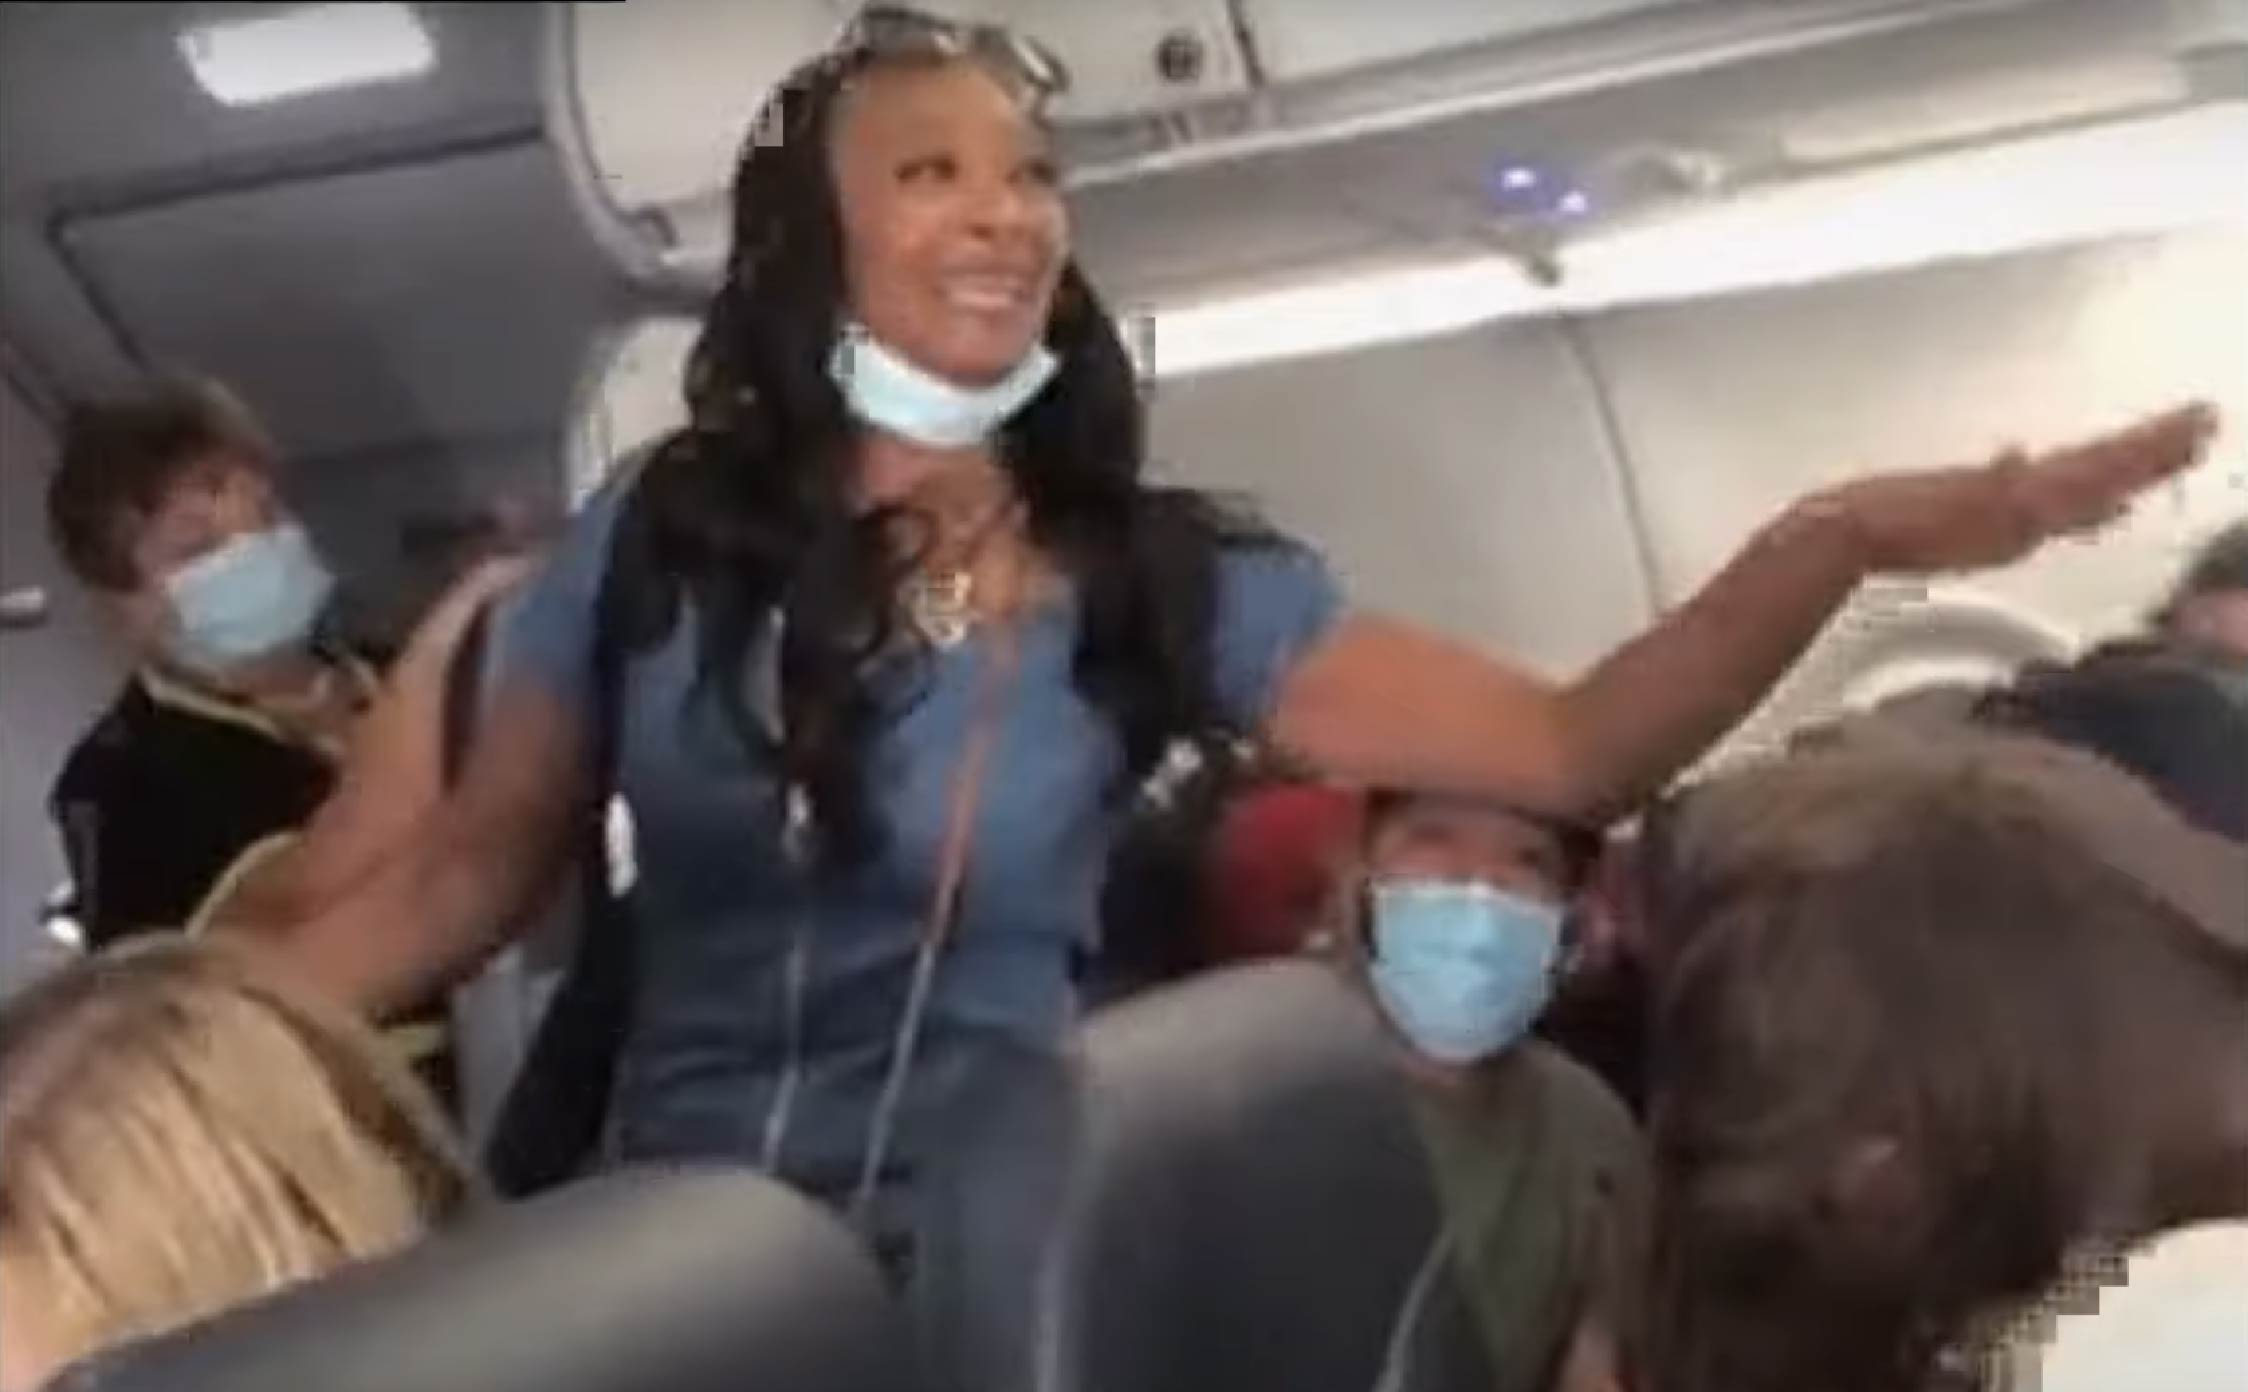 """[WATCH] Self-Proclaimed """"Queen"""" is Arrested on Plane After Going Off on a Crazed Racist, COVID Tirade"""